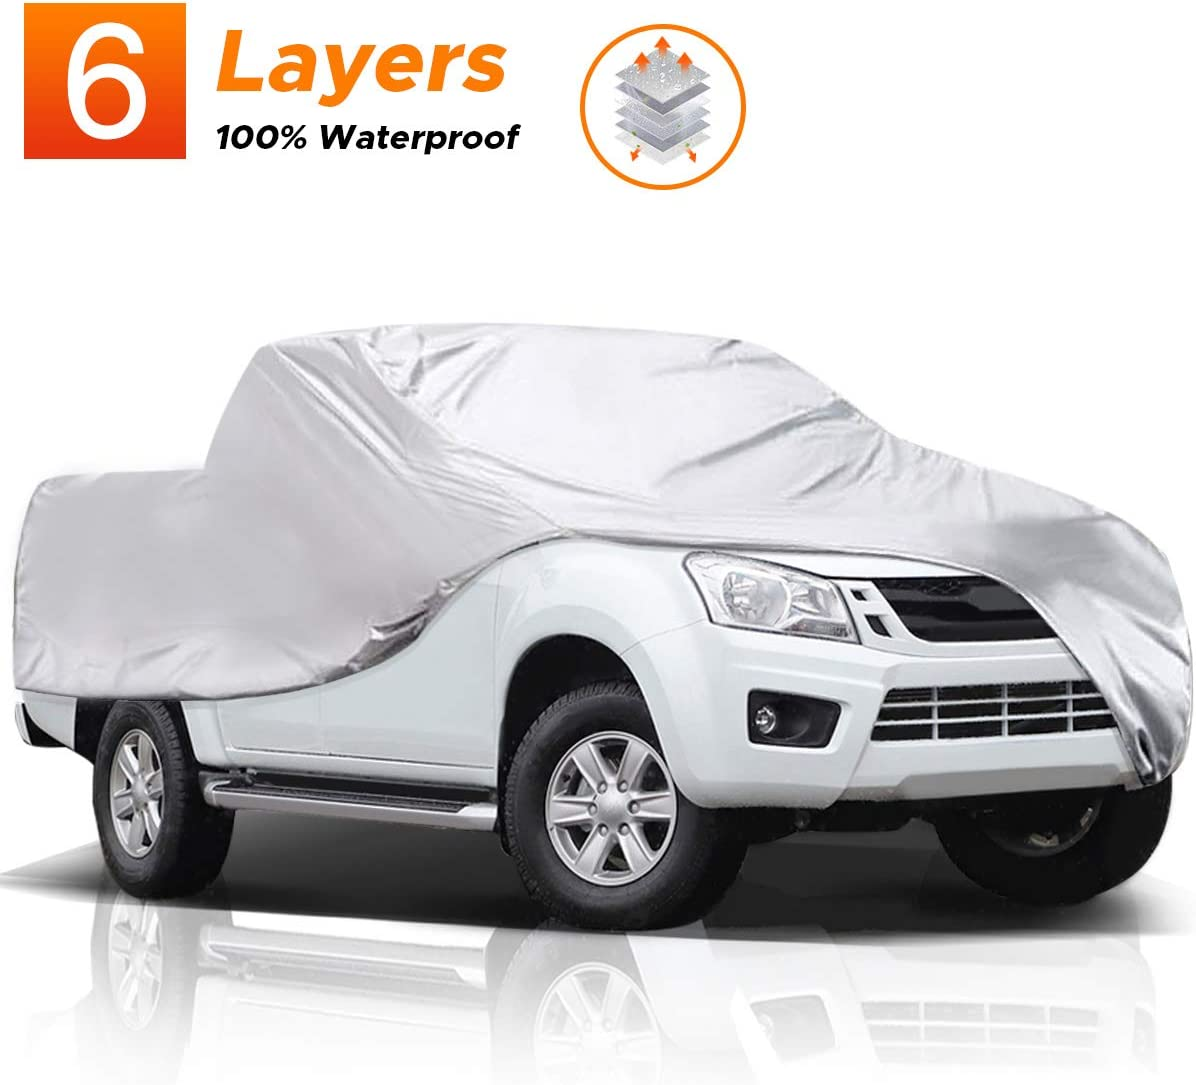 Audew 6 Layers Truck Cover, All Weather Car Cover for Pickup Truck, Snowproof Waterproof Windproof Dustproof UV Protection Universal Car Covers for Truck, Fits up to 246''